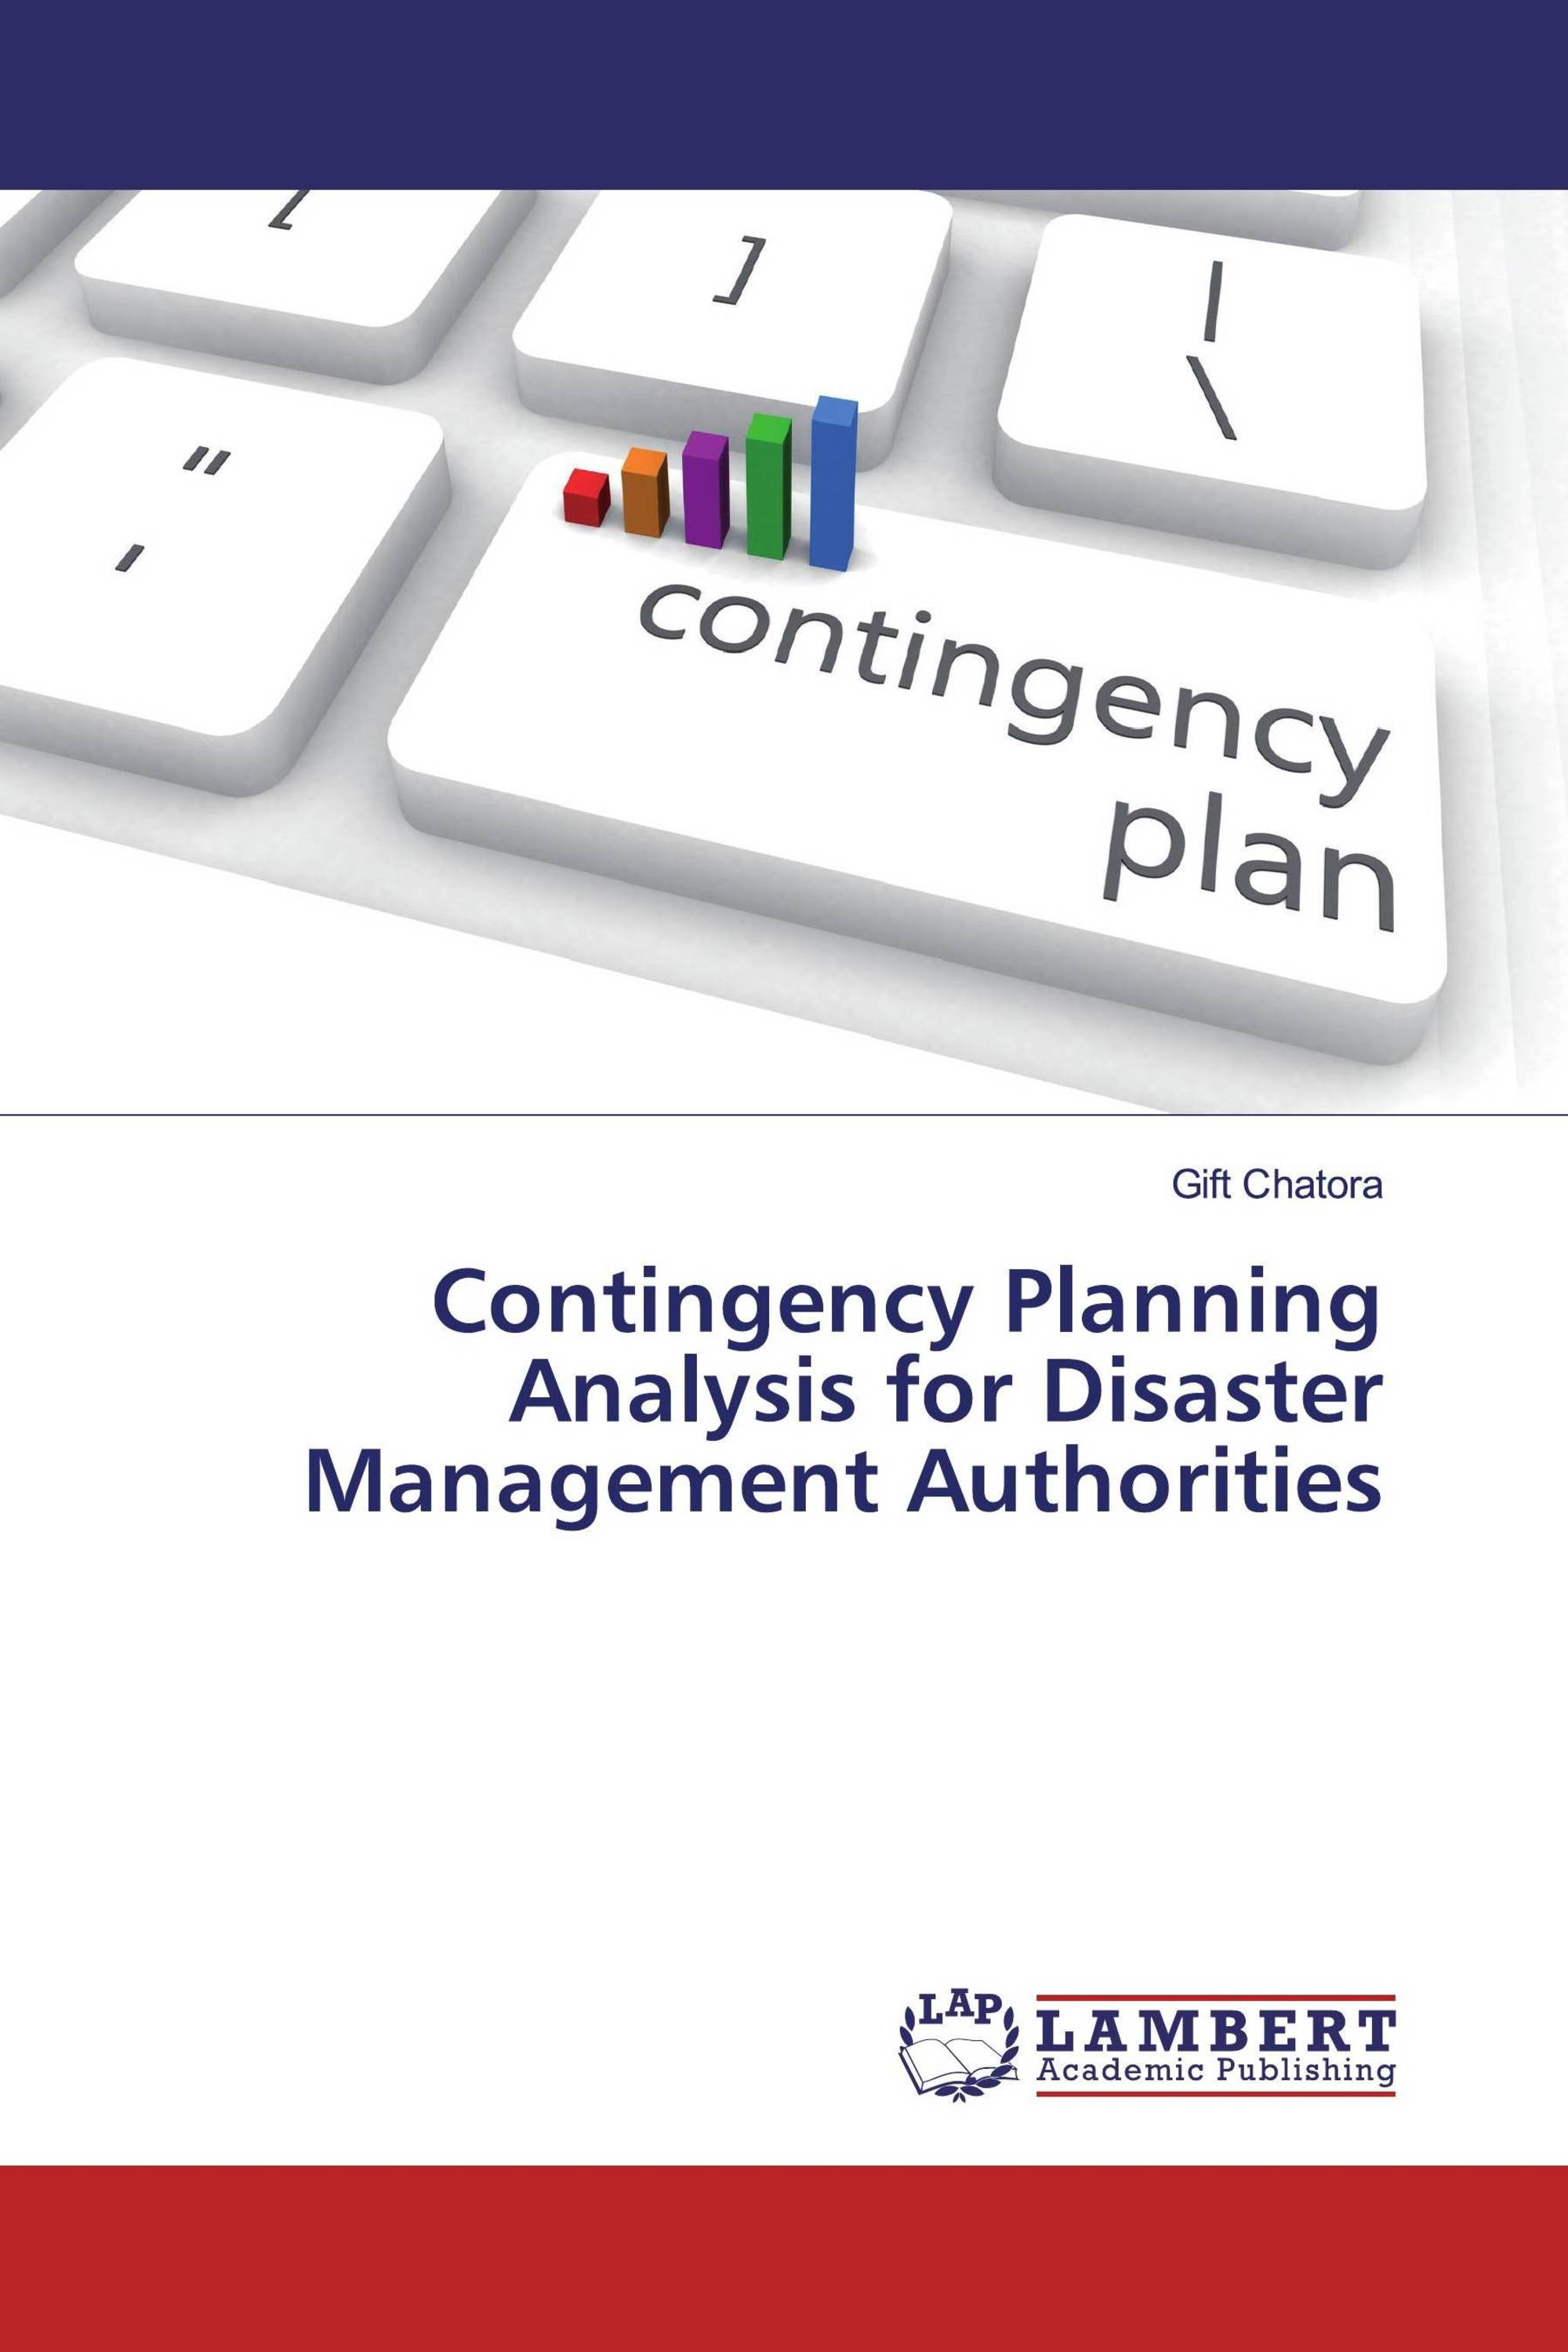 Contingency Planning Analysis for Disaster Management Authorities